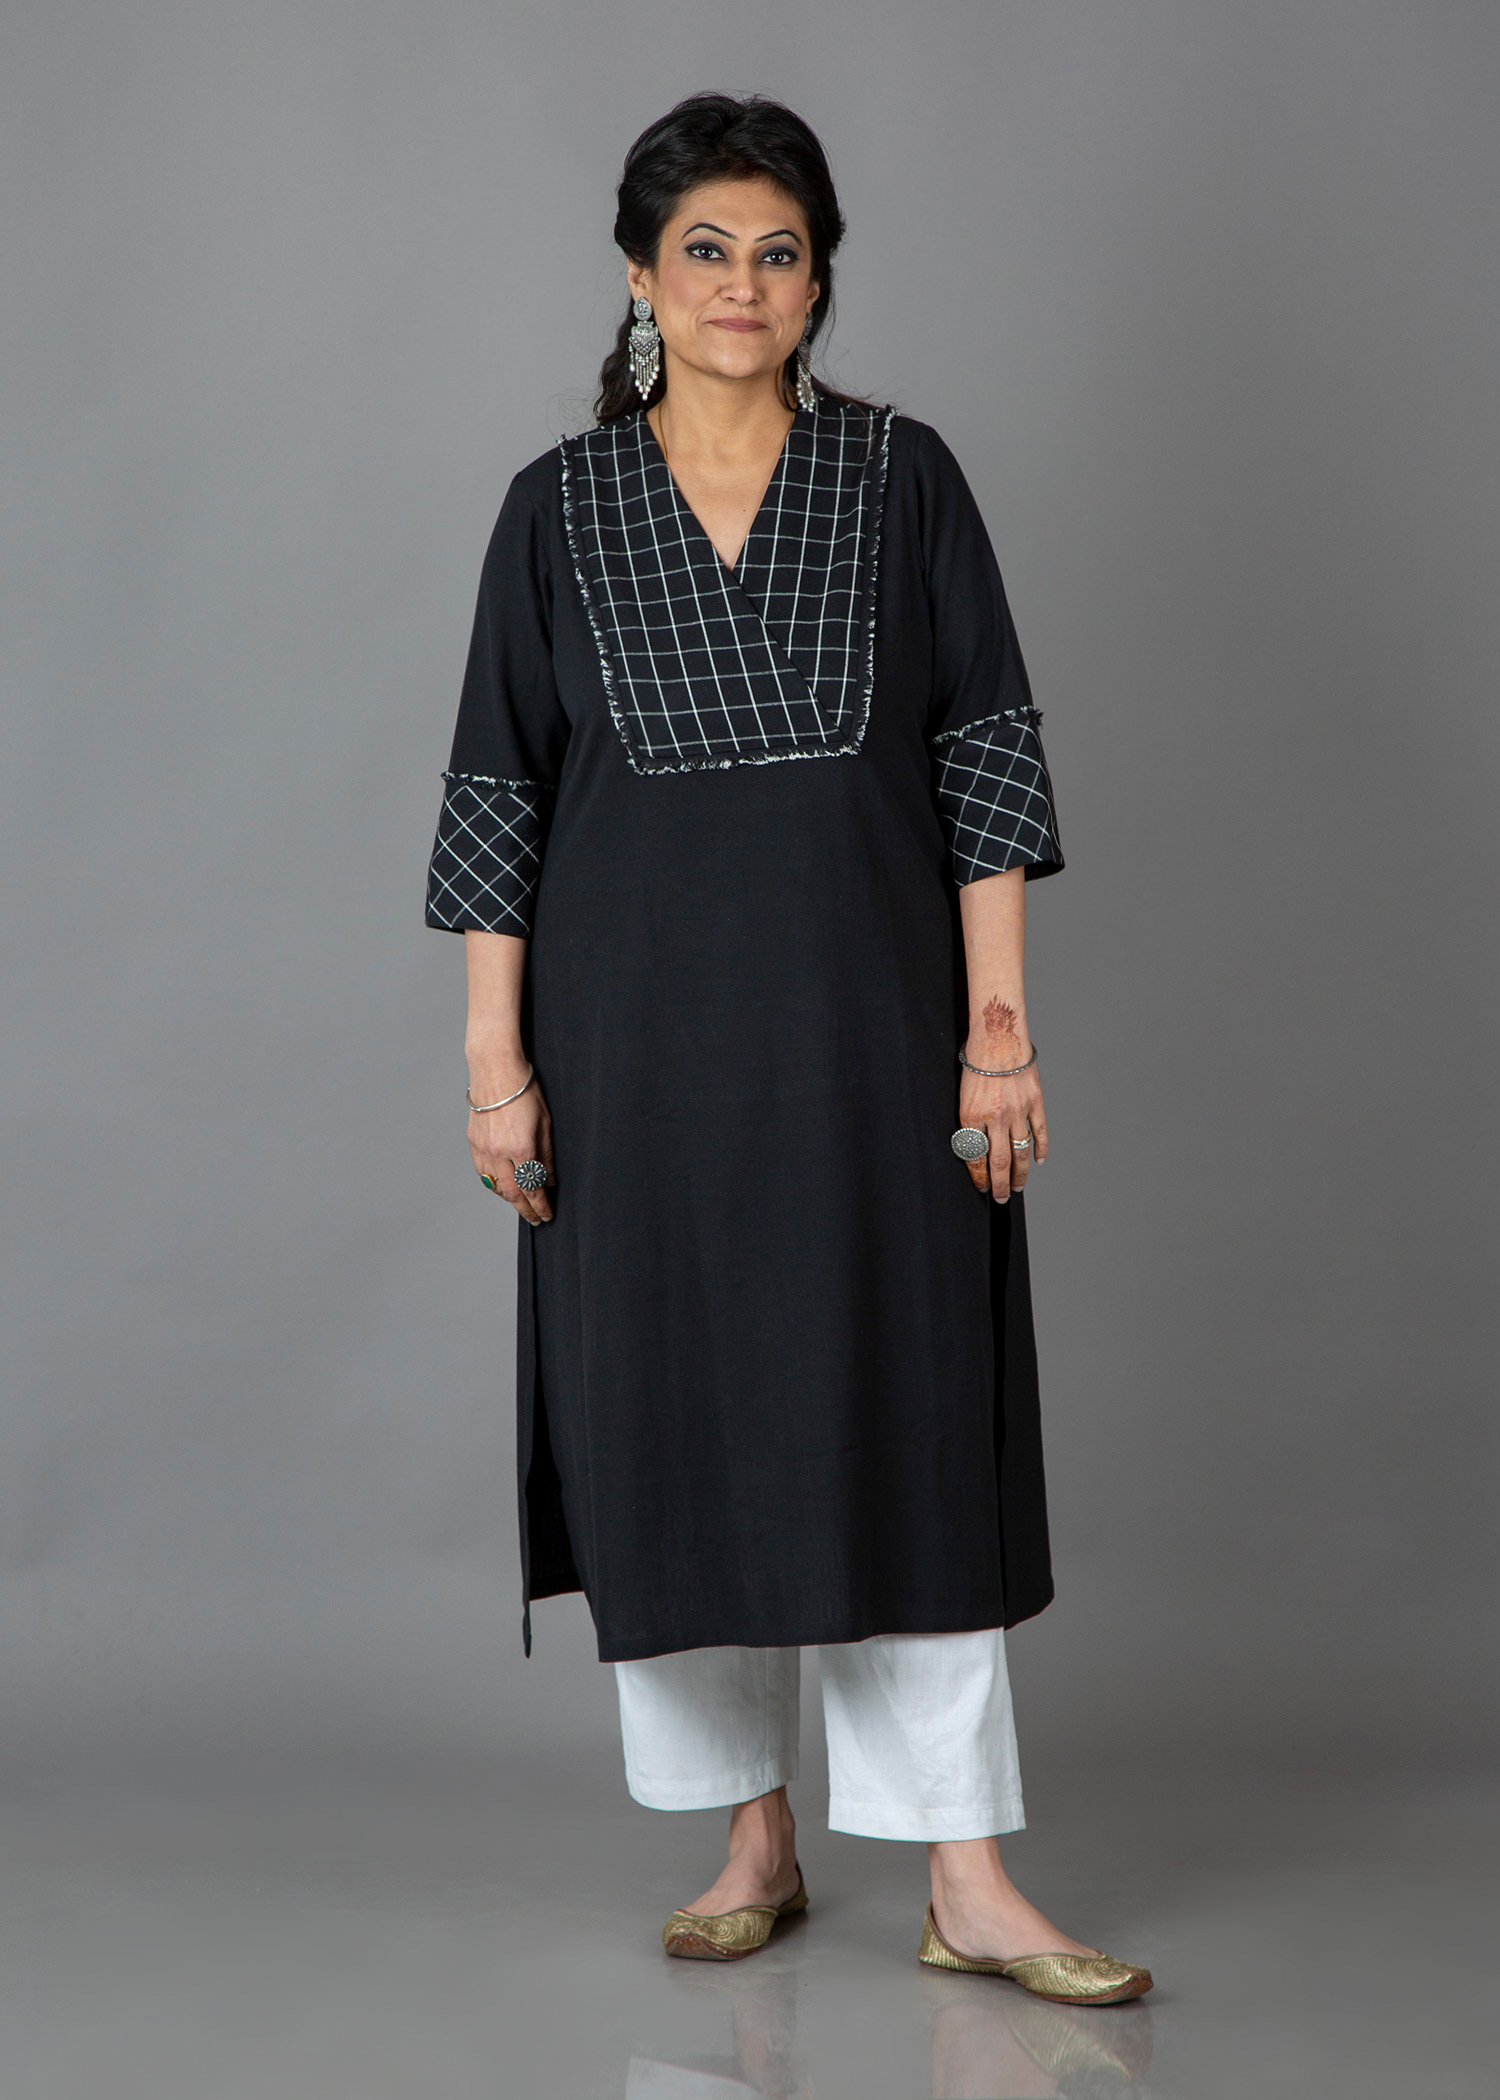 Ink Black & White Check Yoke Handwoven Cotton Kurta